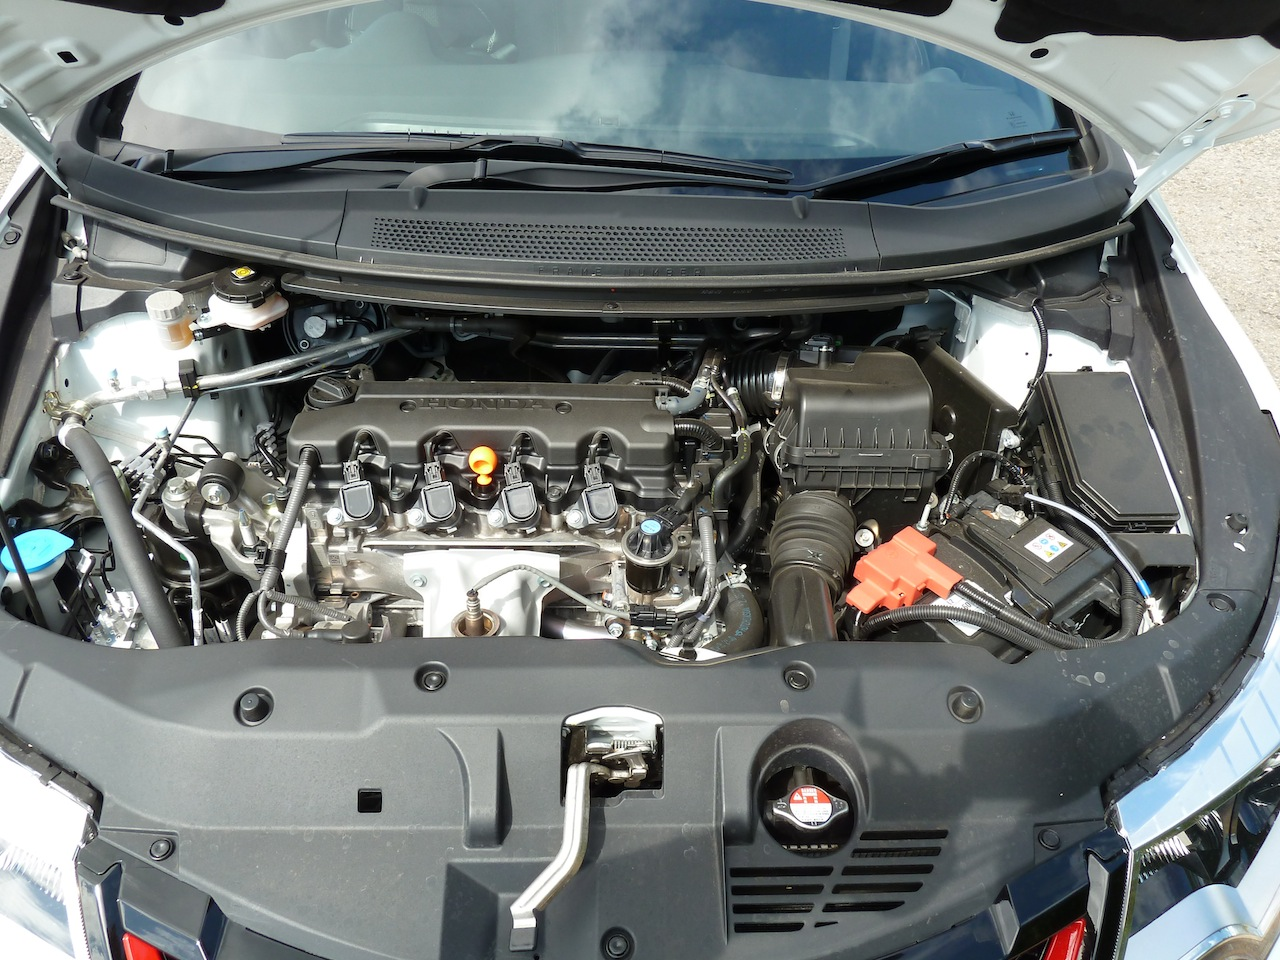 Willing, refined, and eager to perform – Honda's sophisticated four cylinder 1.8 litre petrol engine.